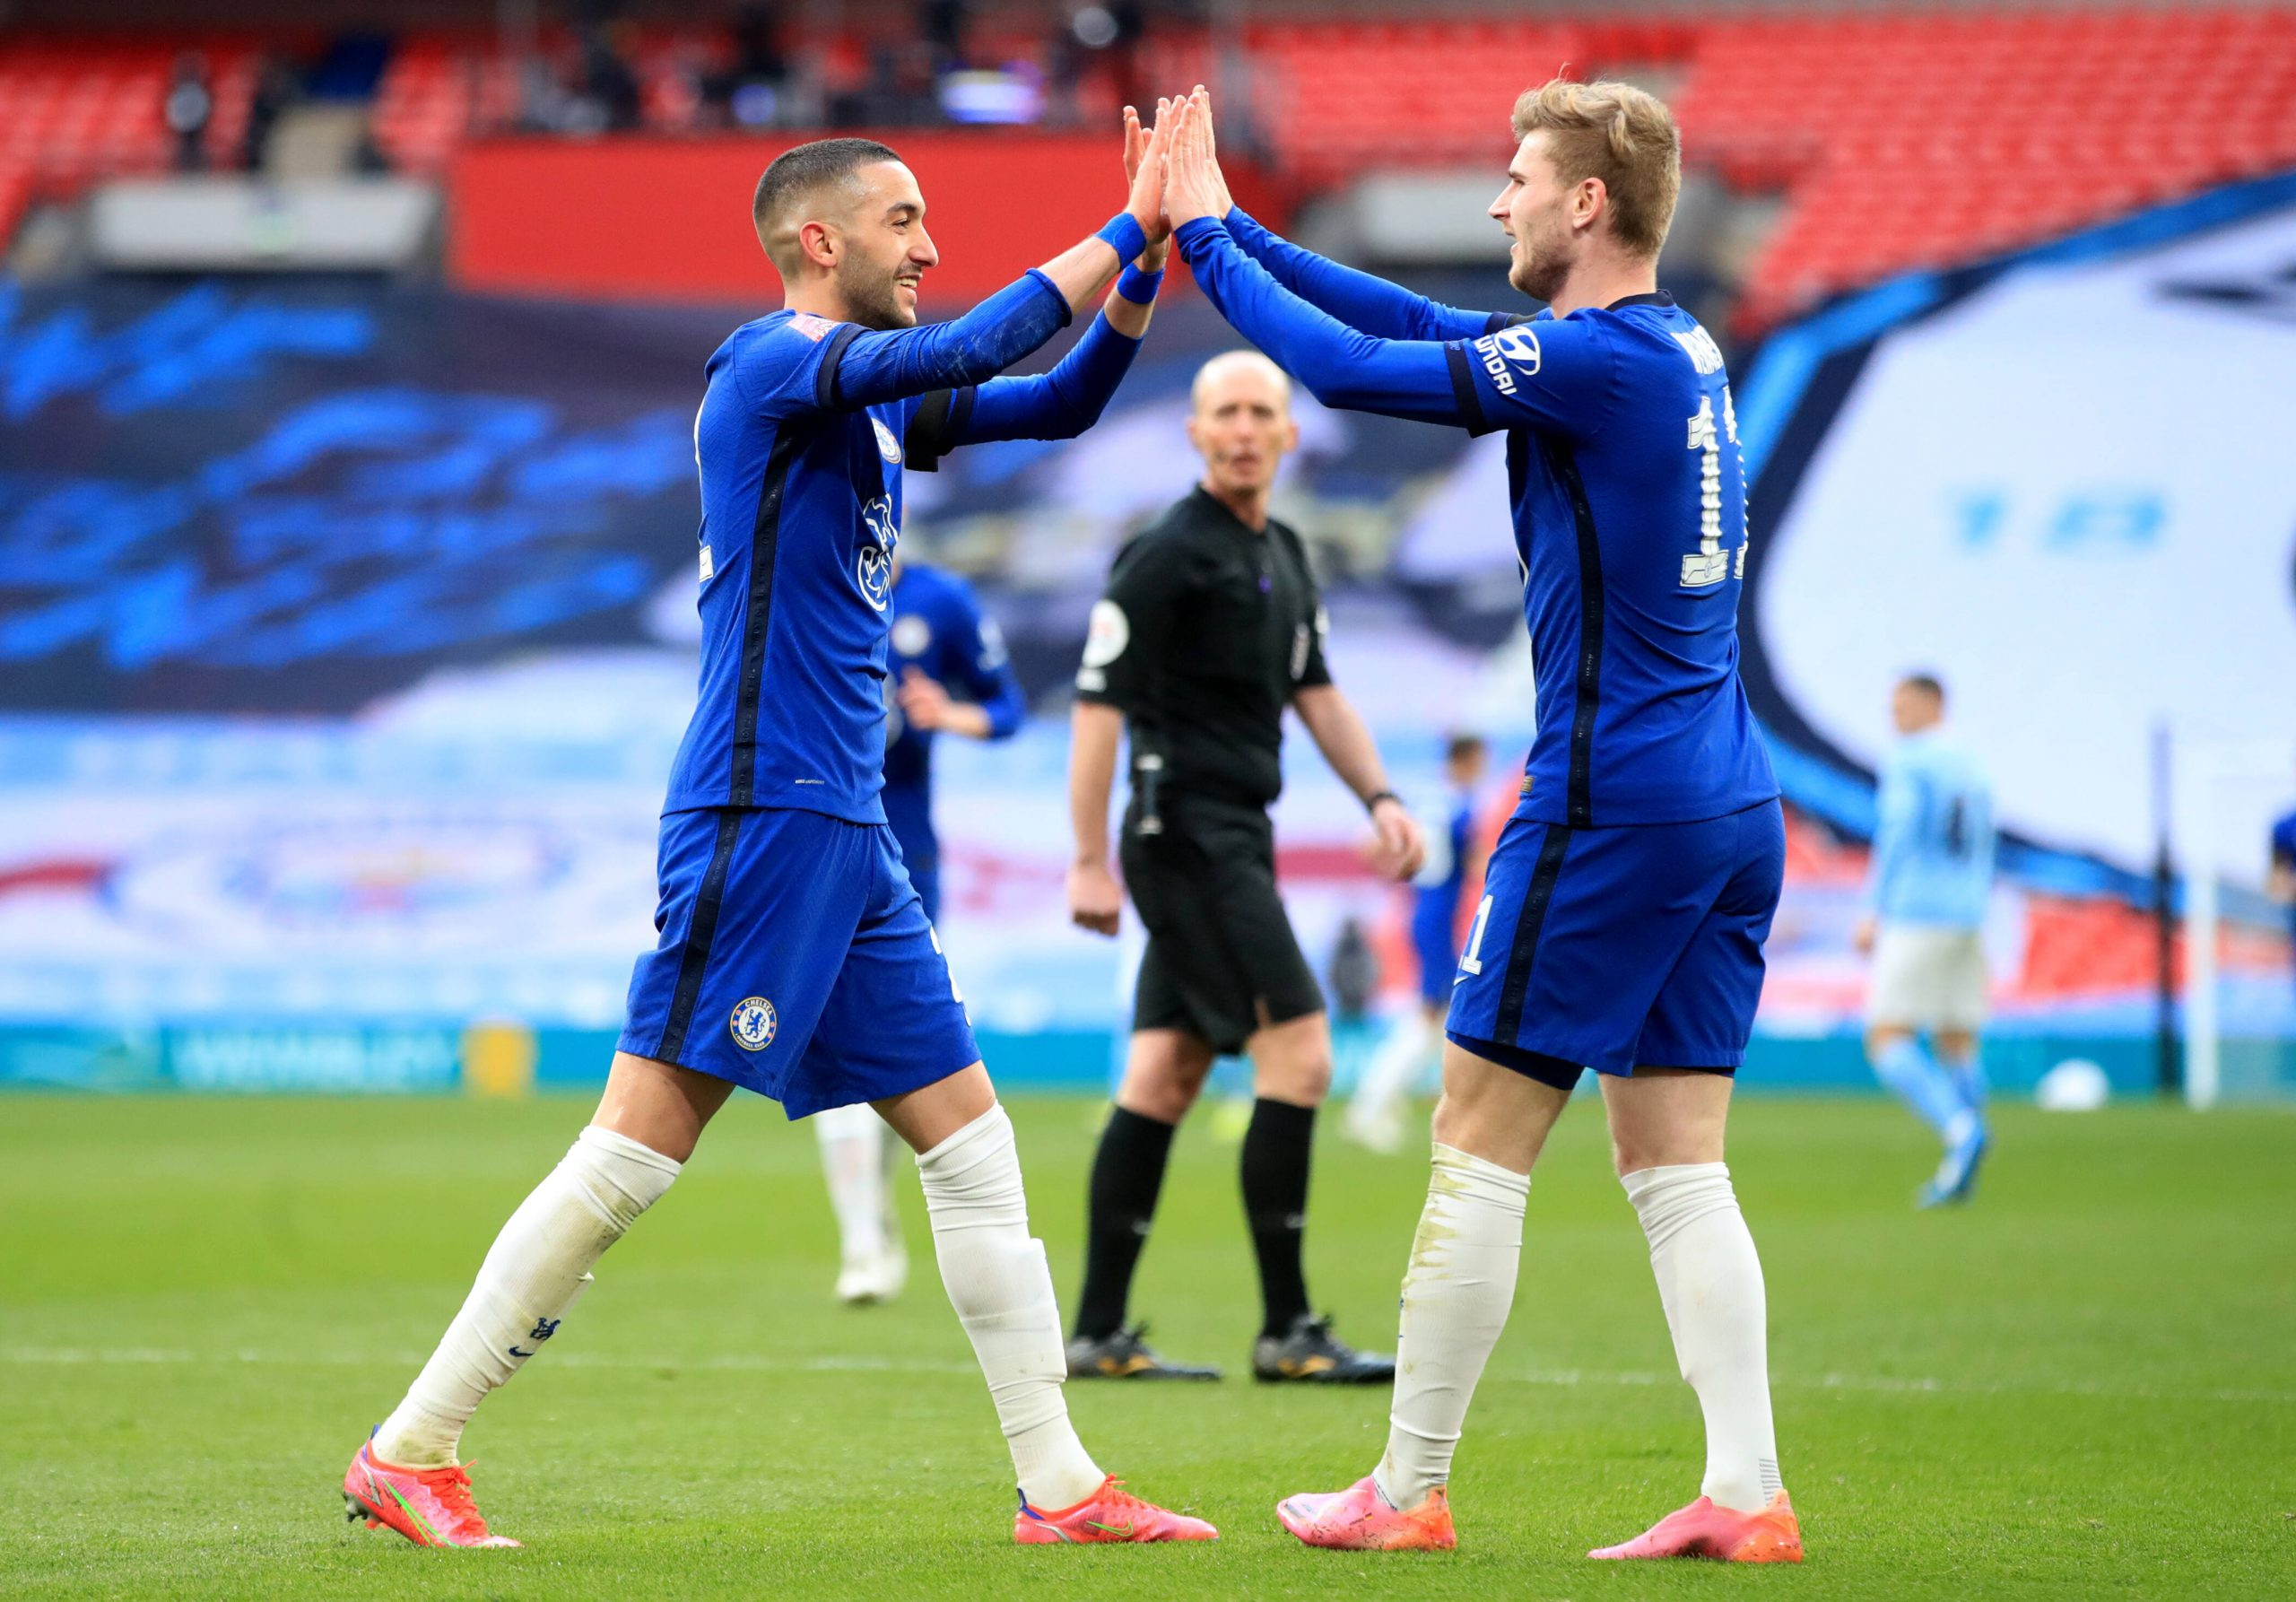 Timo Werner scored a late goal to fire Chelsea to a 3-1 win against Southampton.